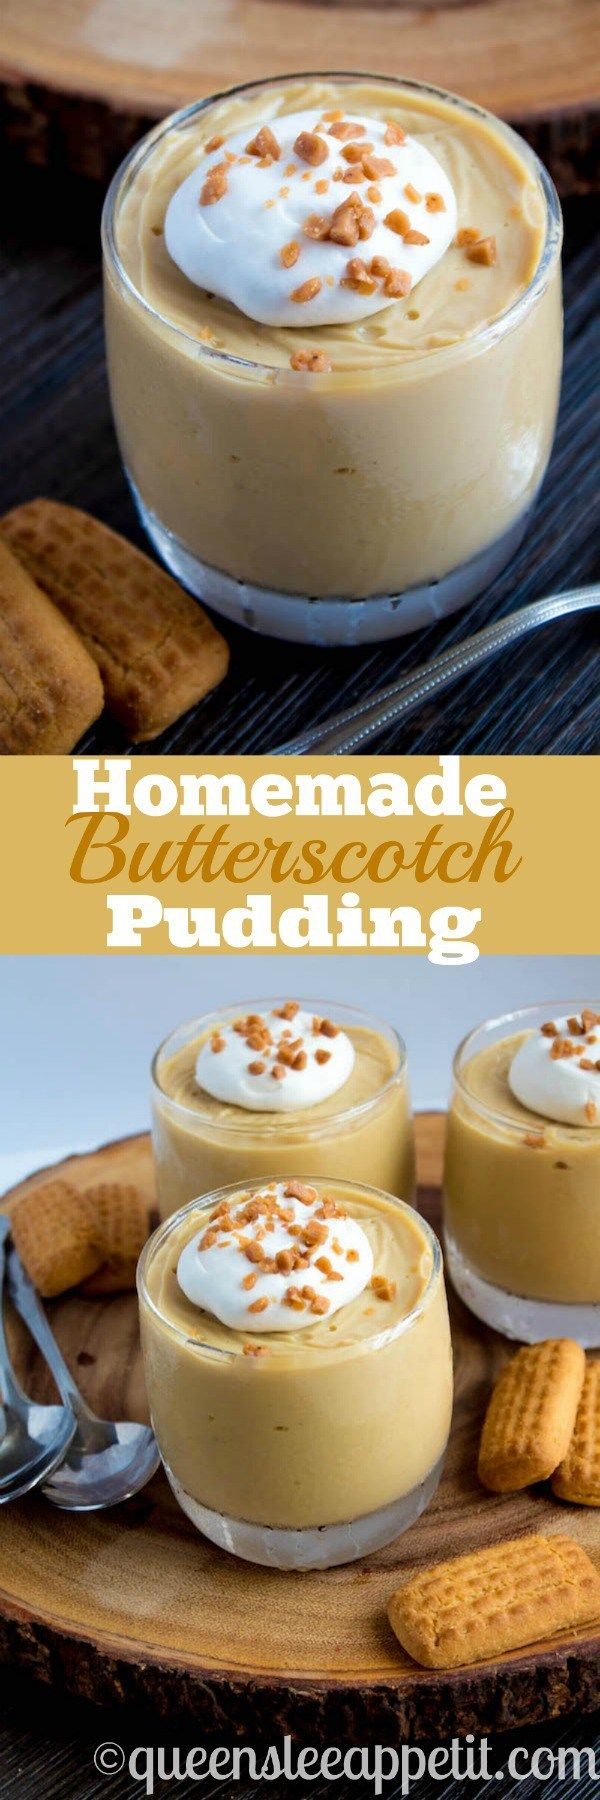 Rich and creamy Homemade Butterscotch Pudding made completely from scratch and takes only 10 minutes to make! A fantastic comfort dessert to enjoy every day!